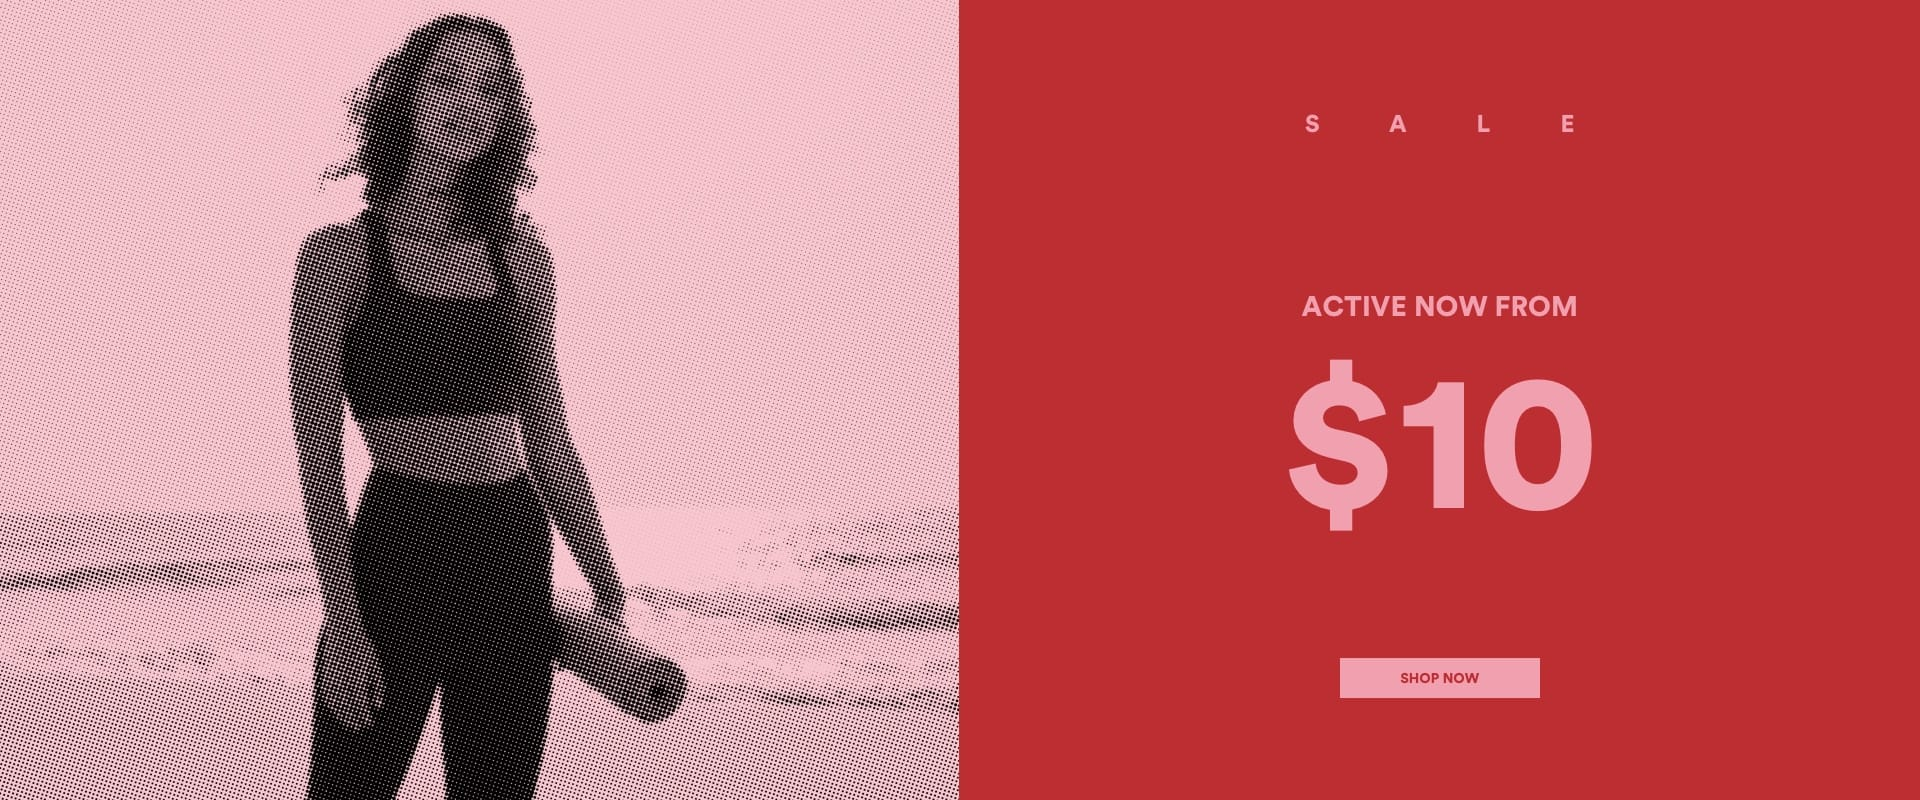 SALE Active. From $10. Click to Shop.